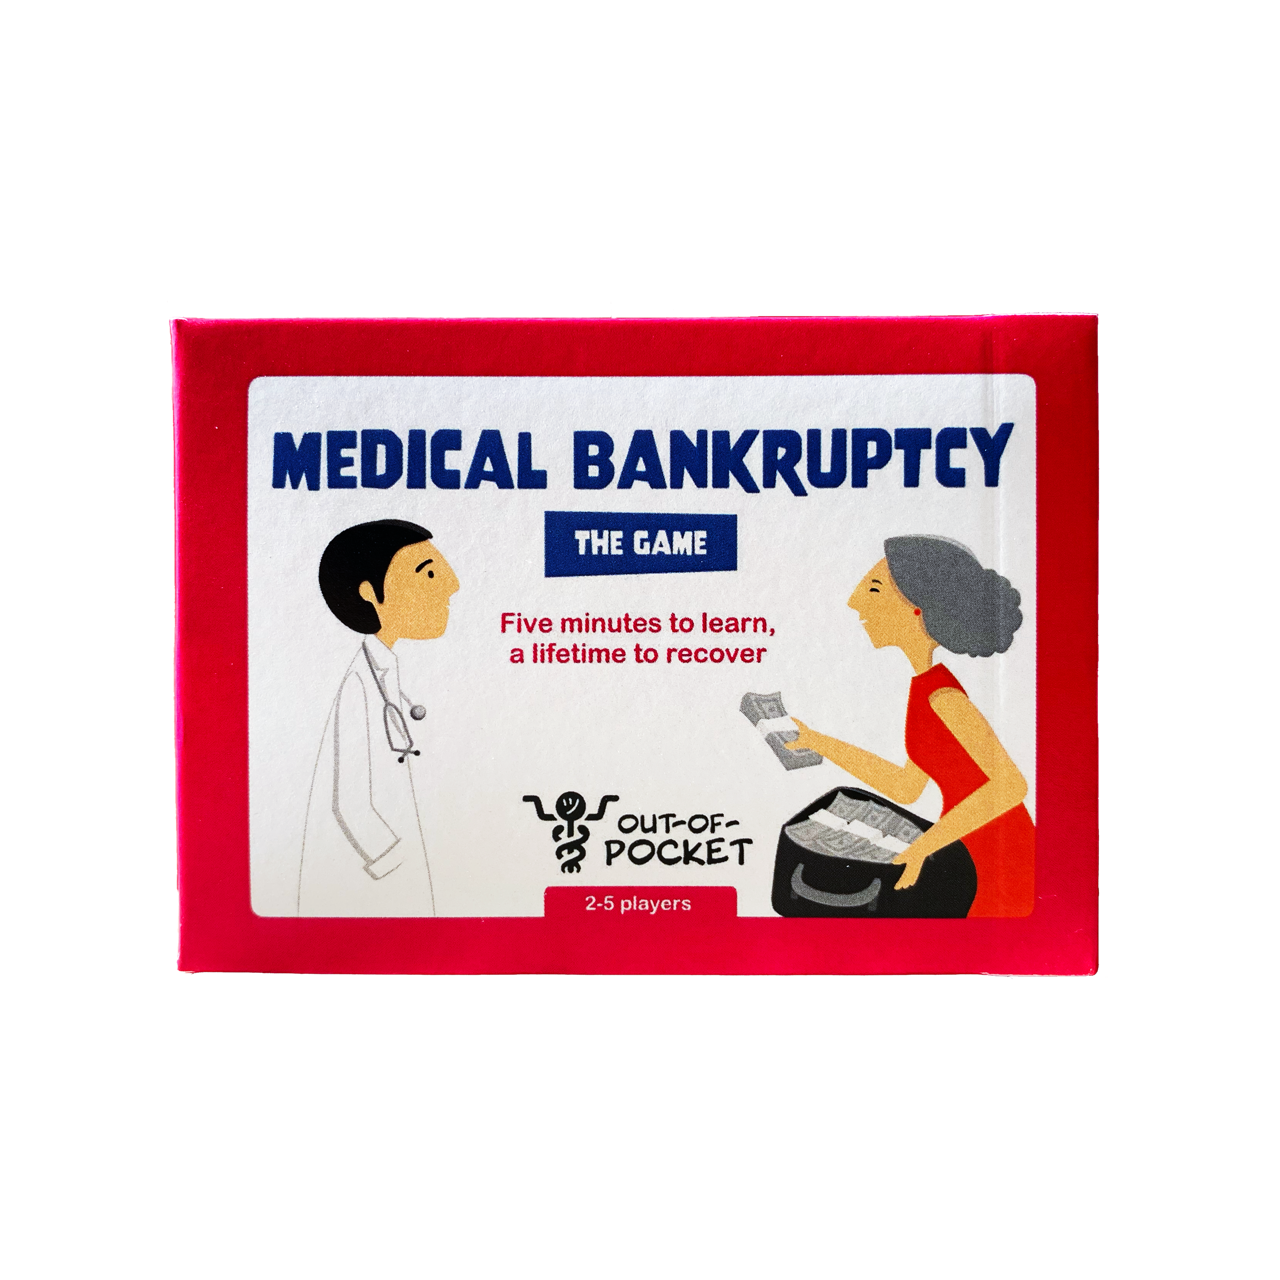 Medical Bankruptcy: The Game